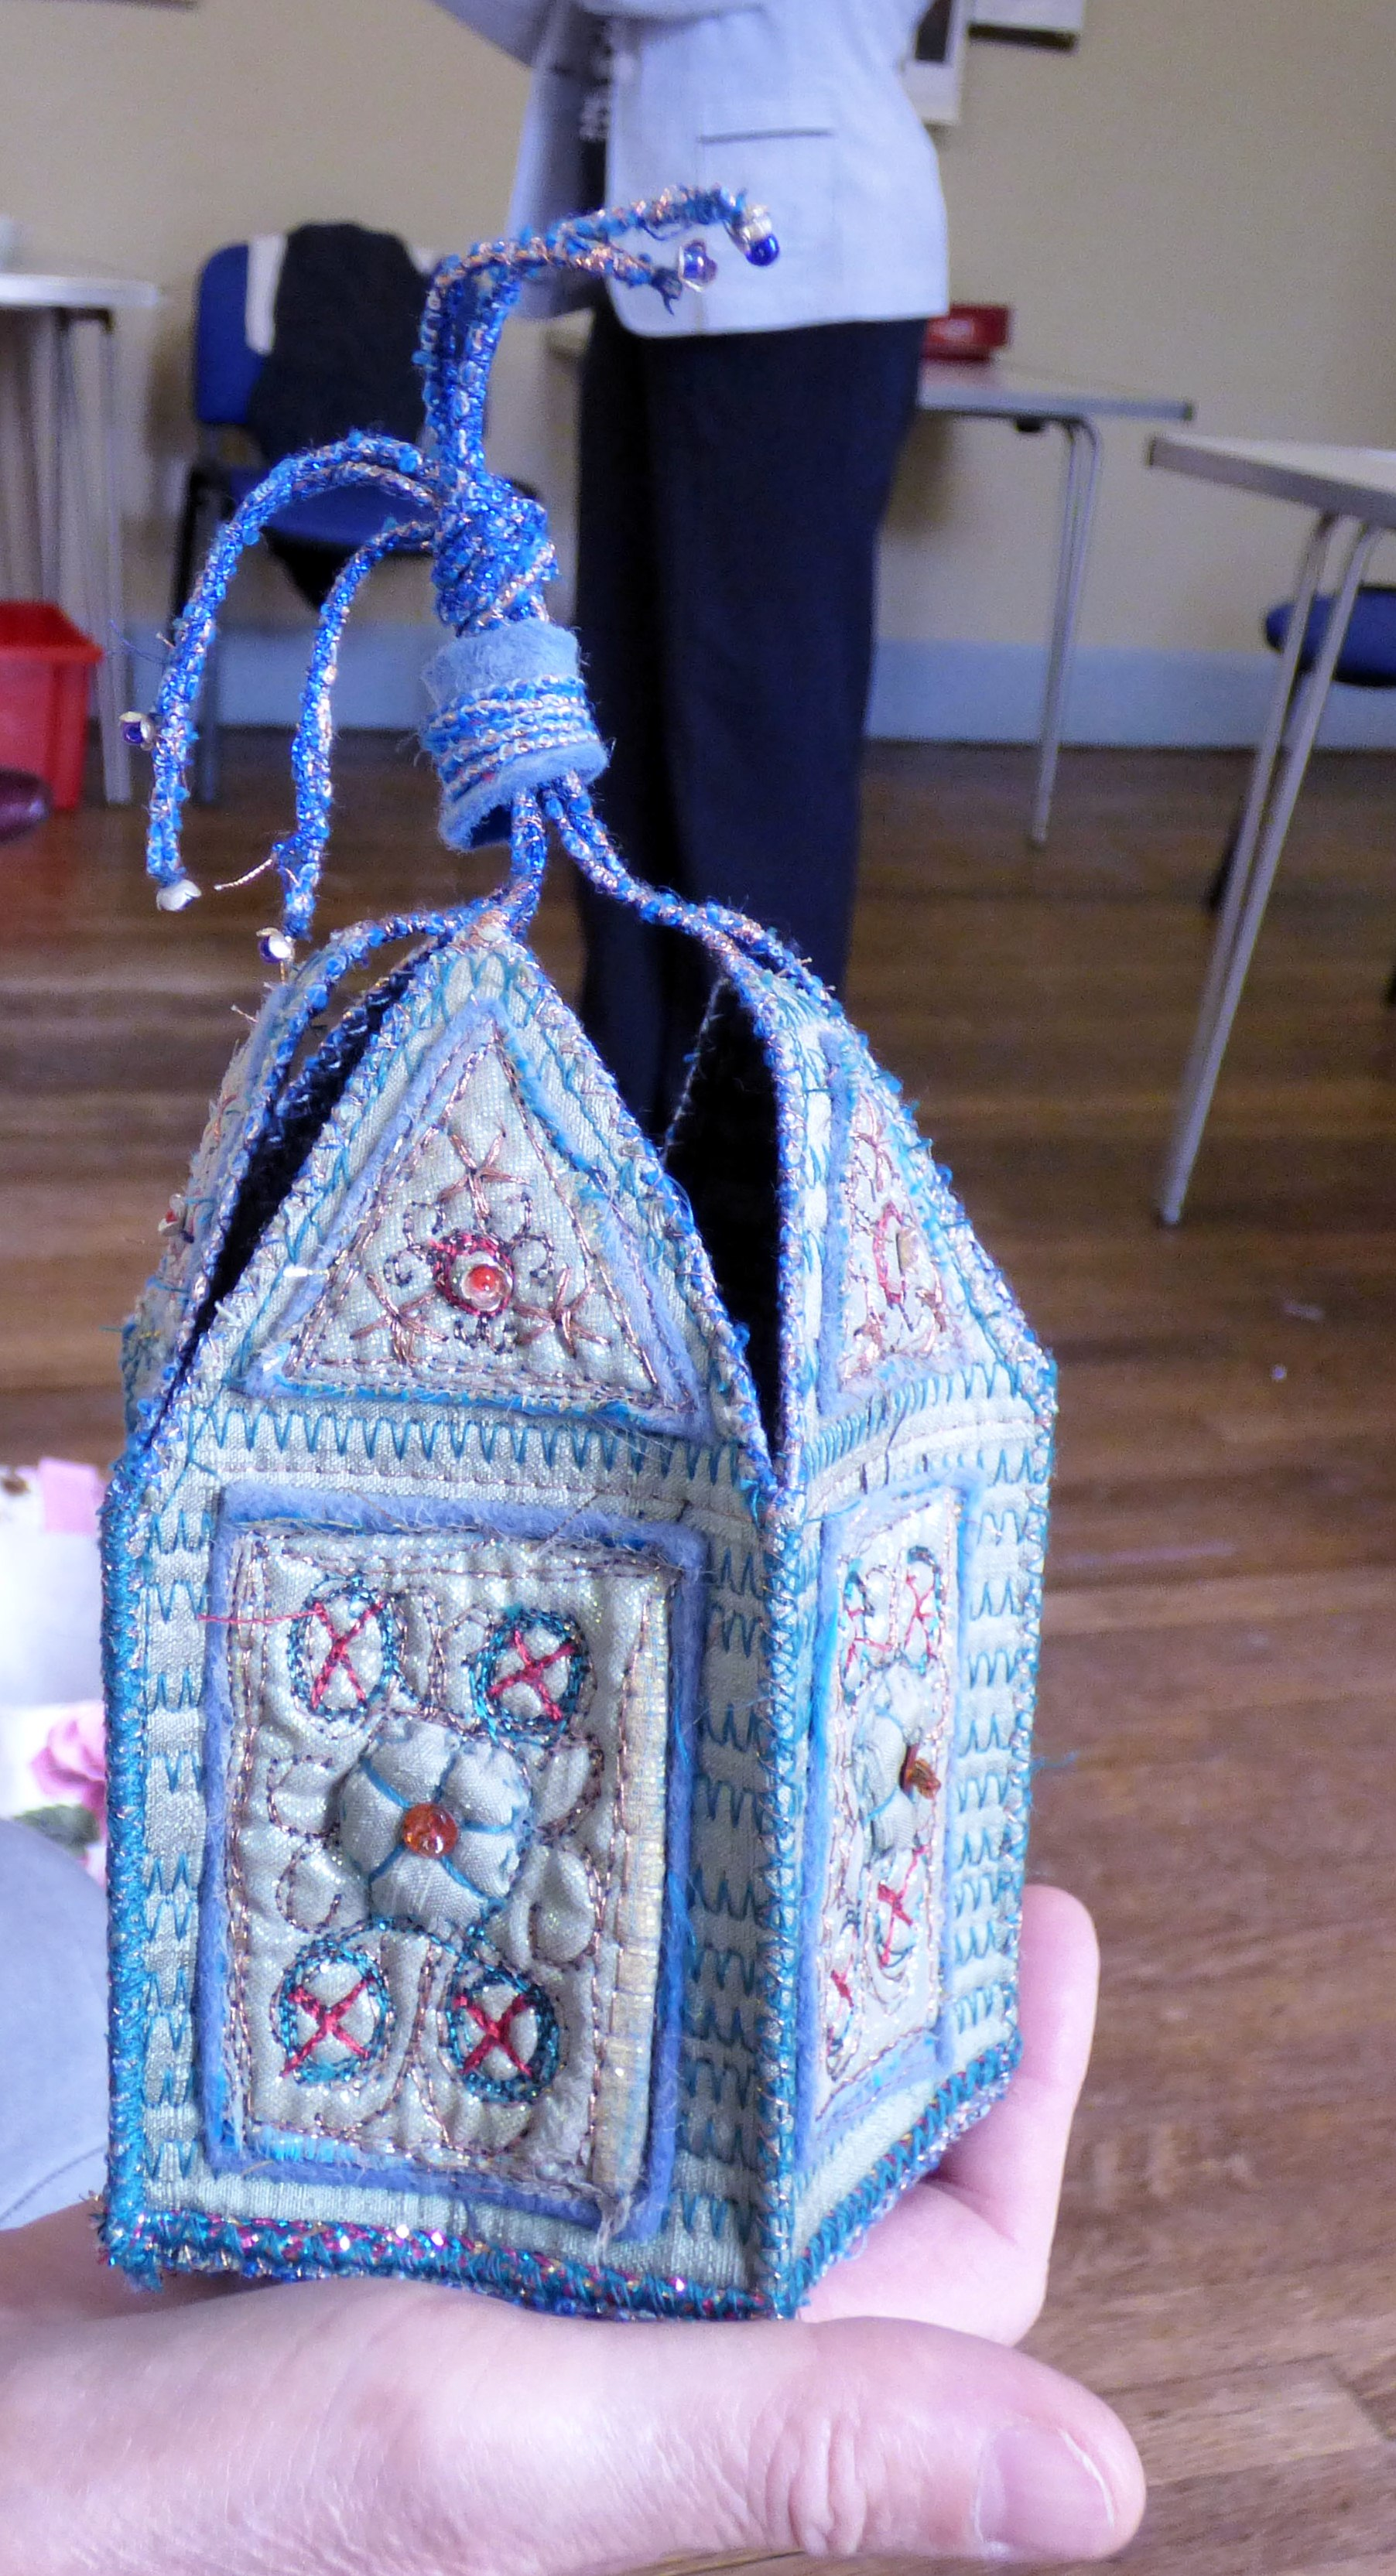 machine embroidered casket made by Sheila Conchie, Glossop EG